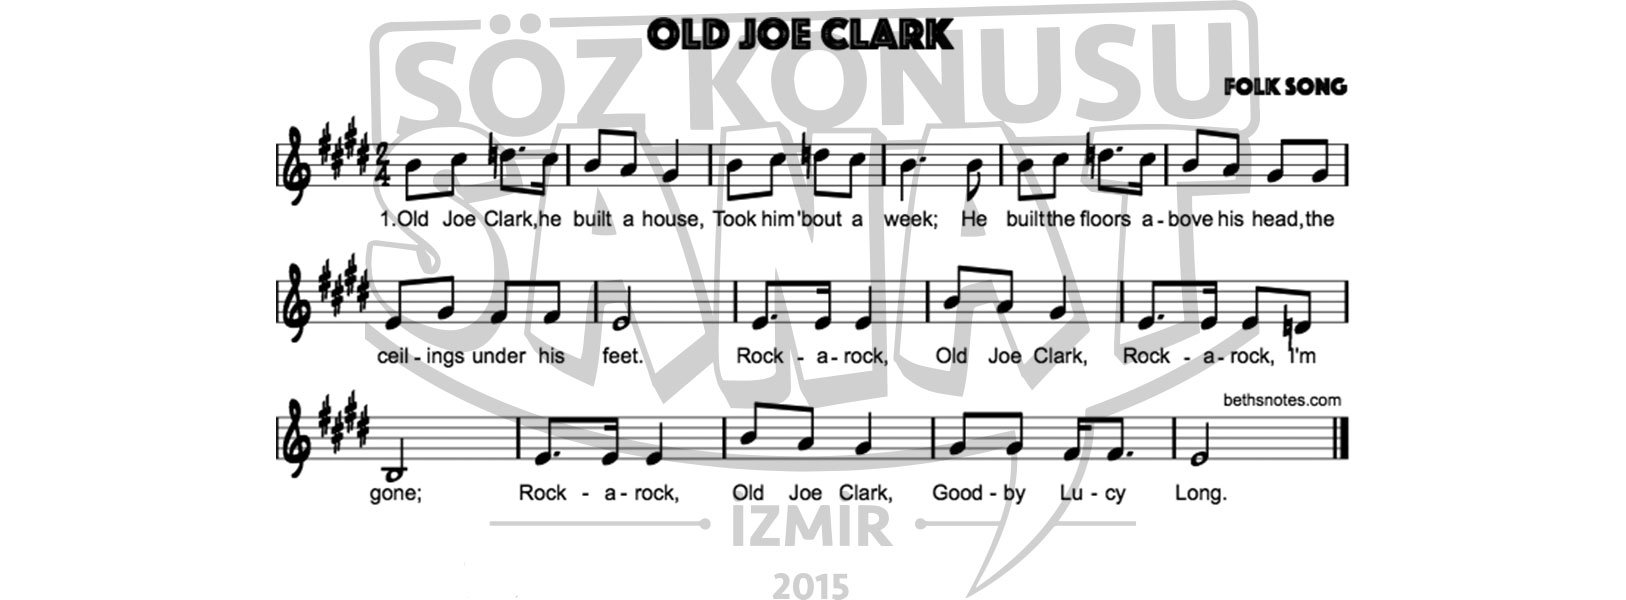 old-joe-clark-keman-notası